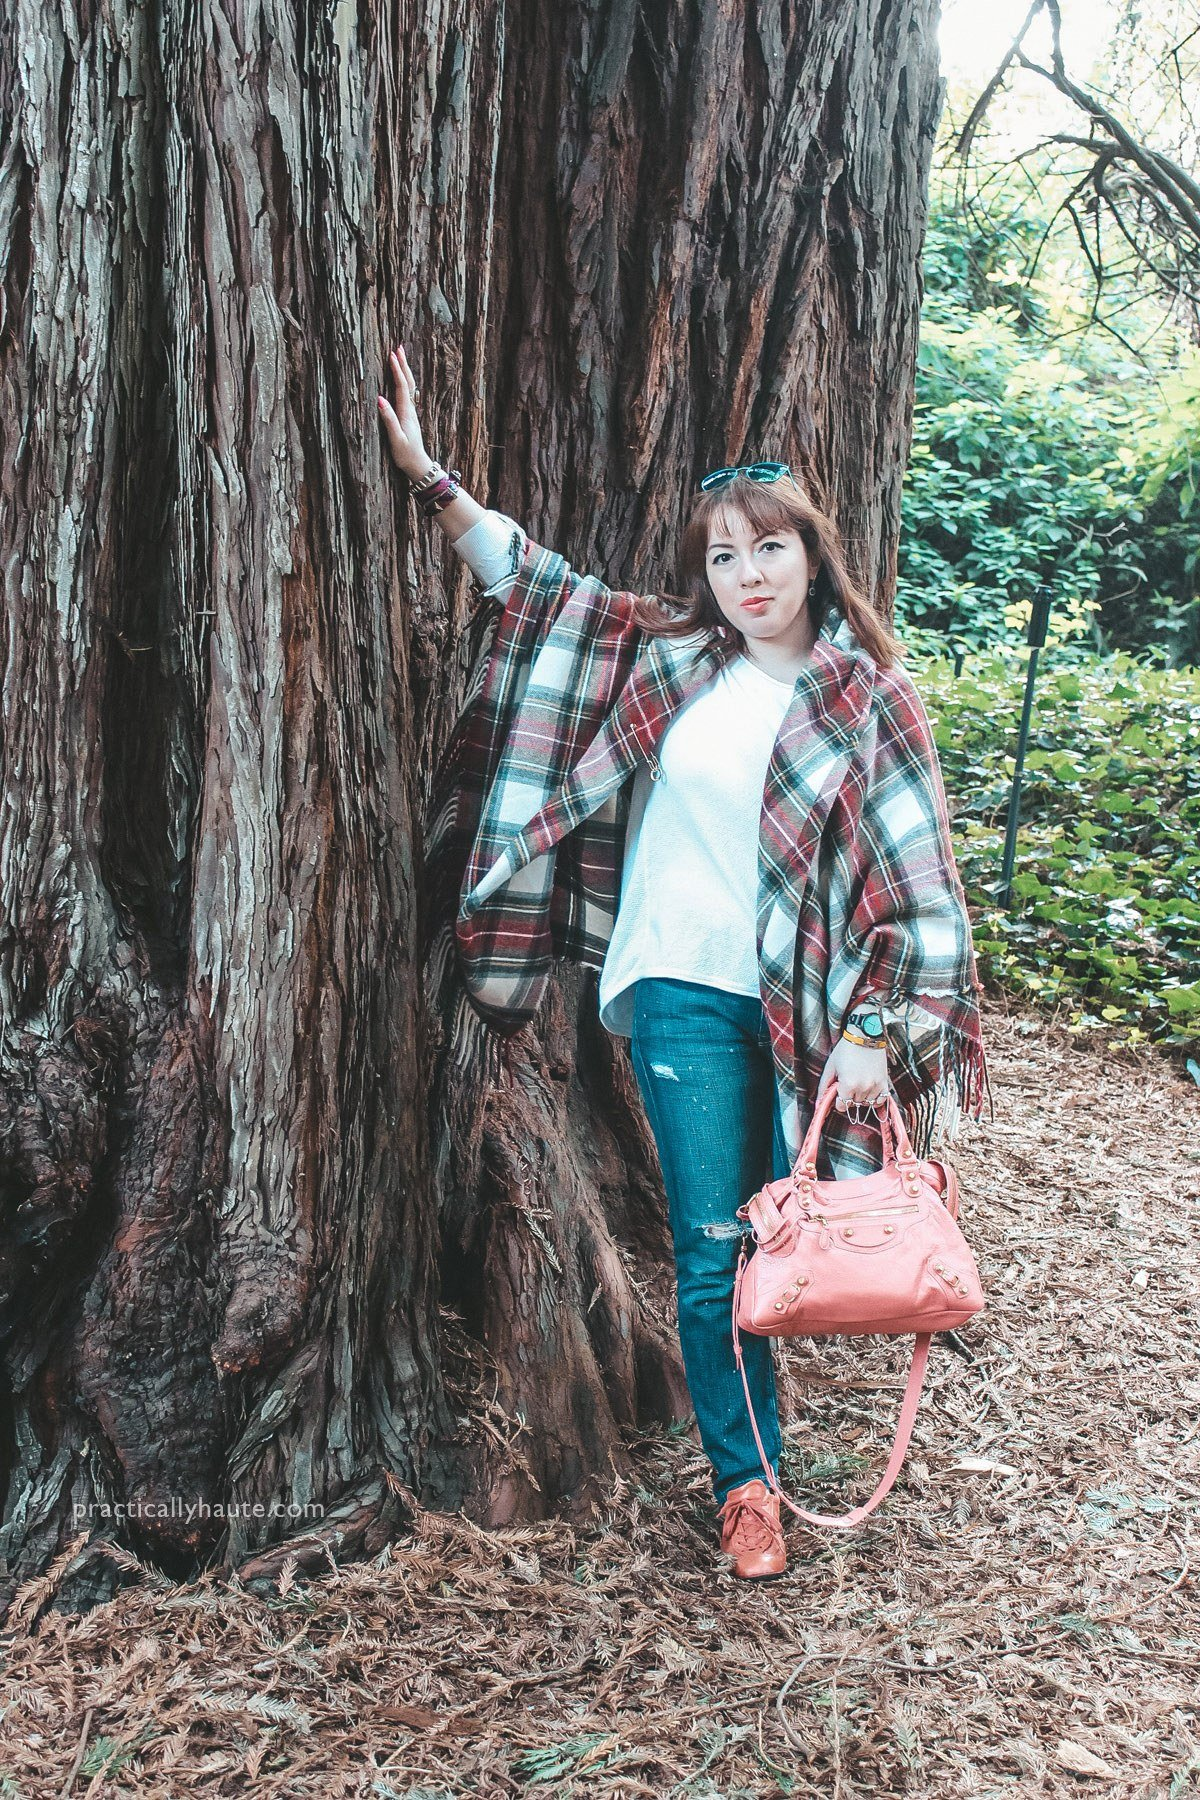 Fashion blogger wearing plaid outfit look featuring Vivienne Westwood tartan cape, blue jeans, white seater, and pink Balenciaga city bag. Standing in front of ancient Redwood tree in California.